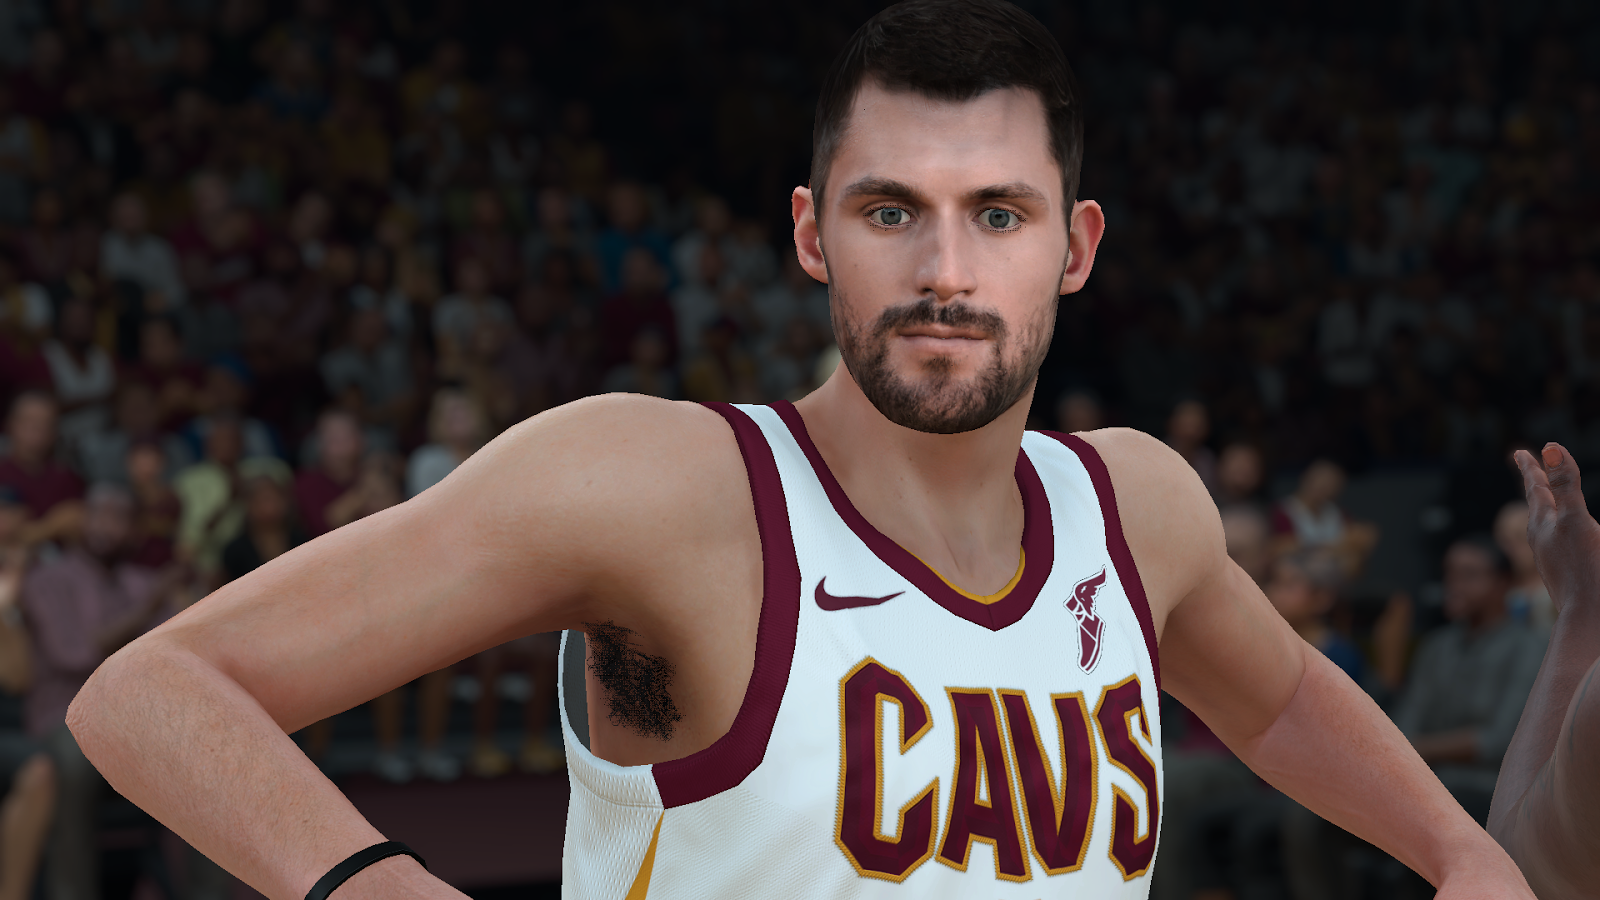 Nba Final Draft 2k18 | All Basketball Scores Info